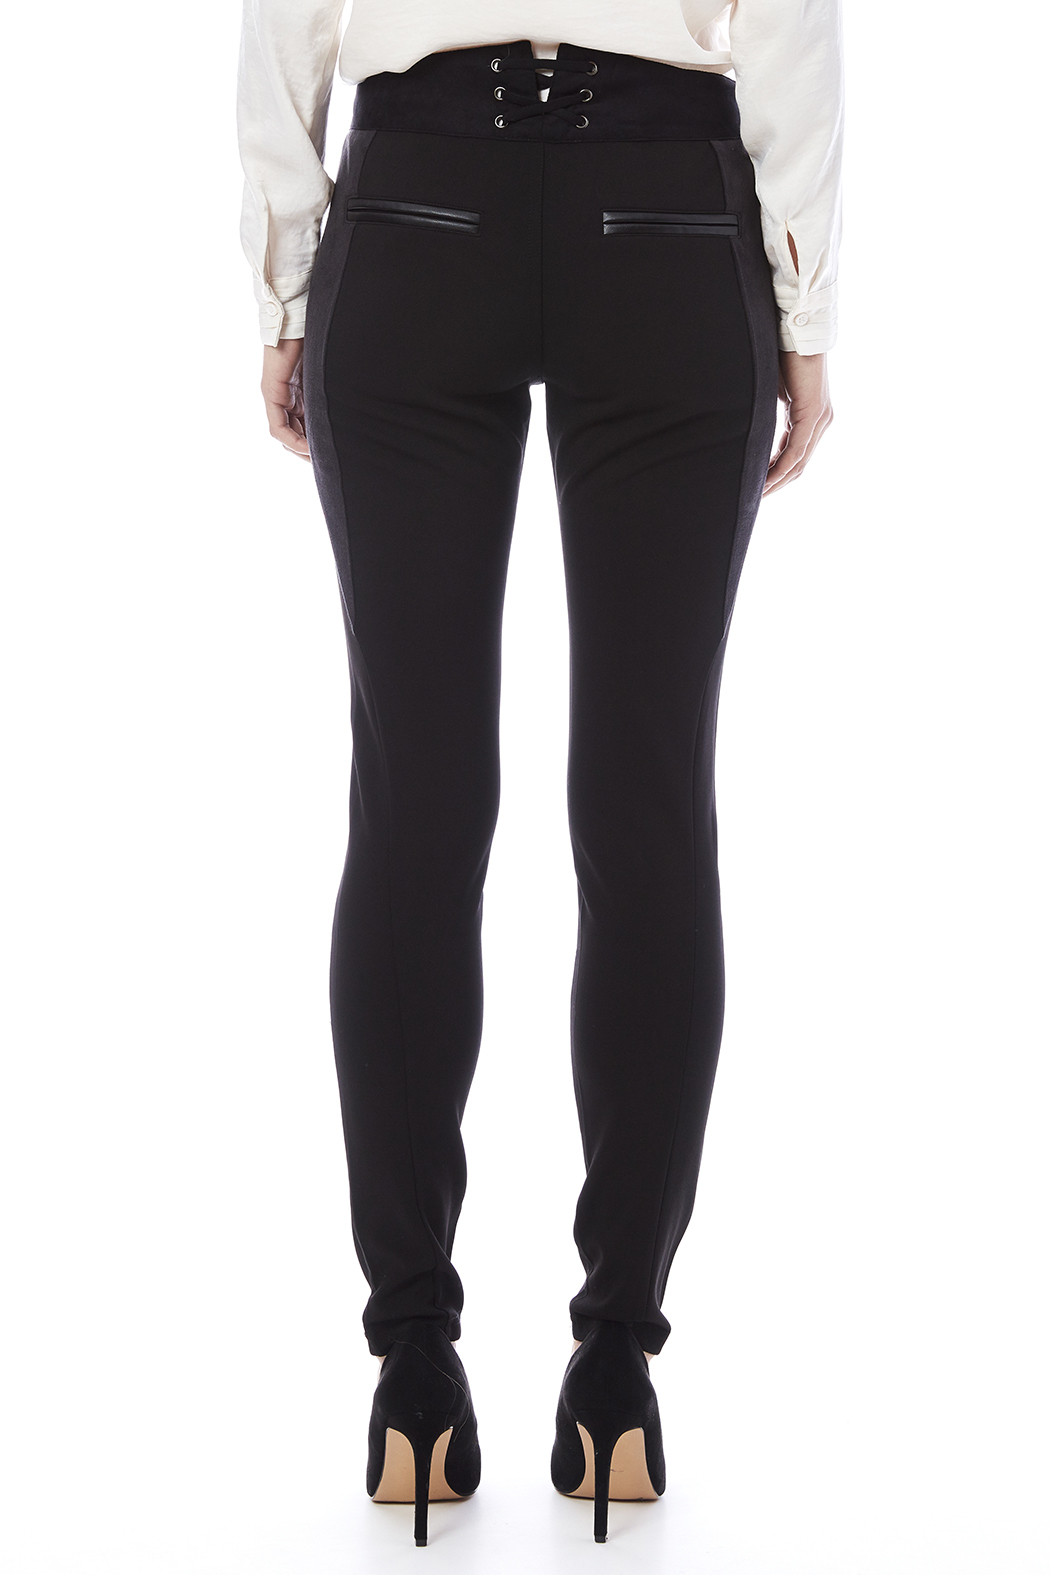 Miss Me Lace Up Detail Skinny Pants - Back Cropped Image